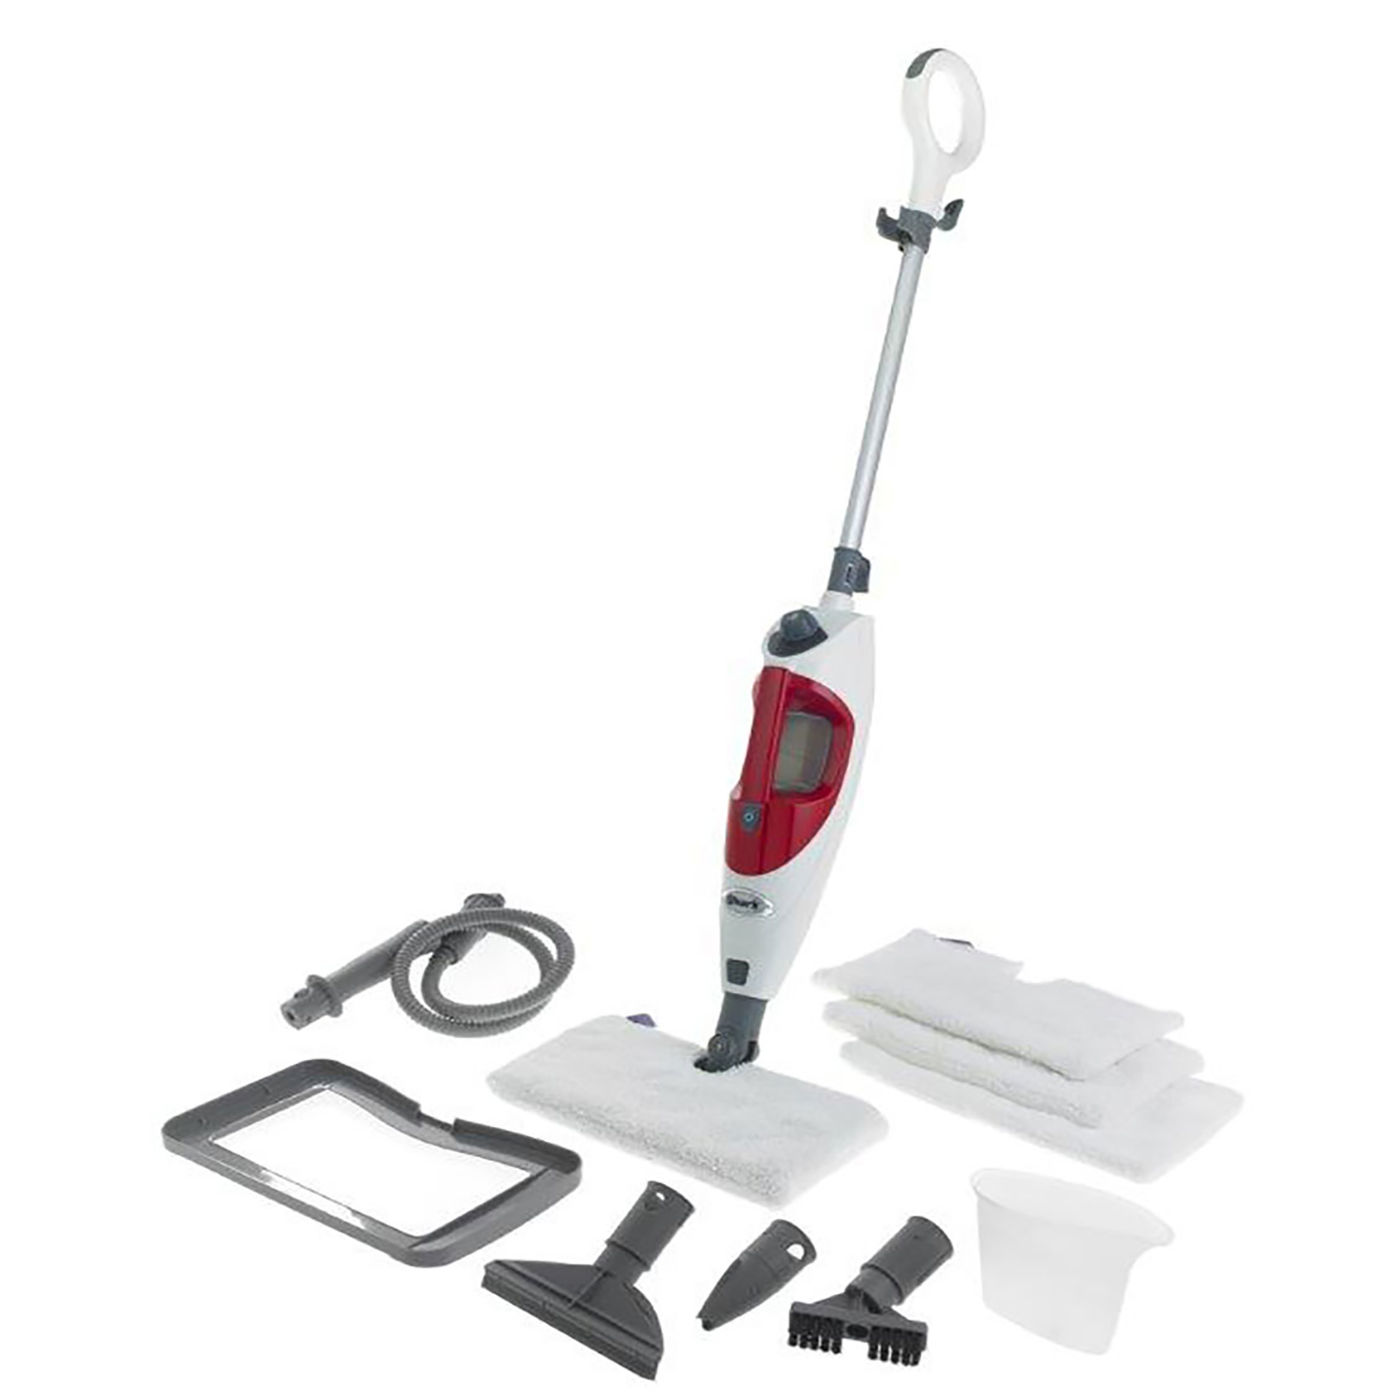 Shark Multi Function Lite Steam Pocket Mop S2901ukco